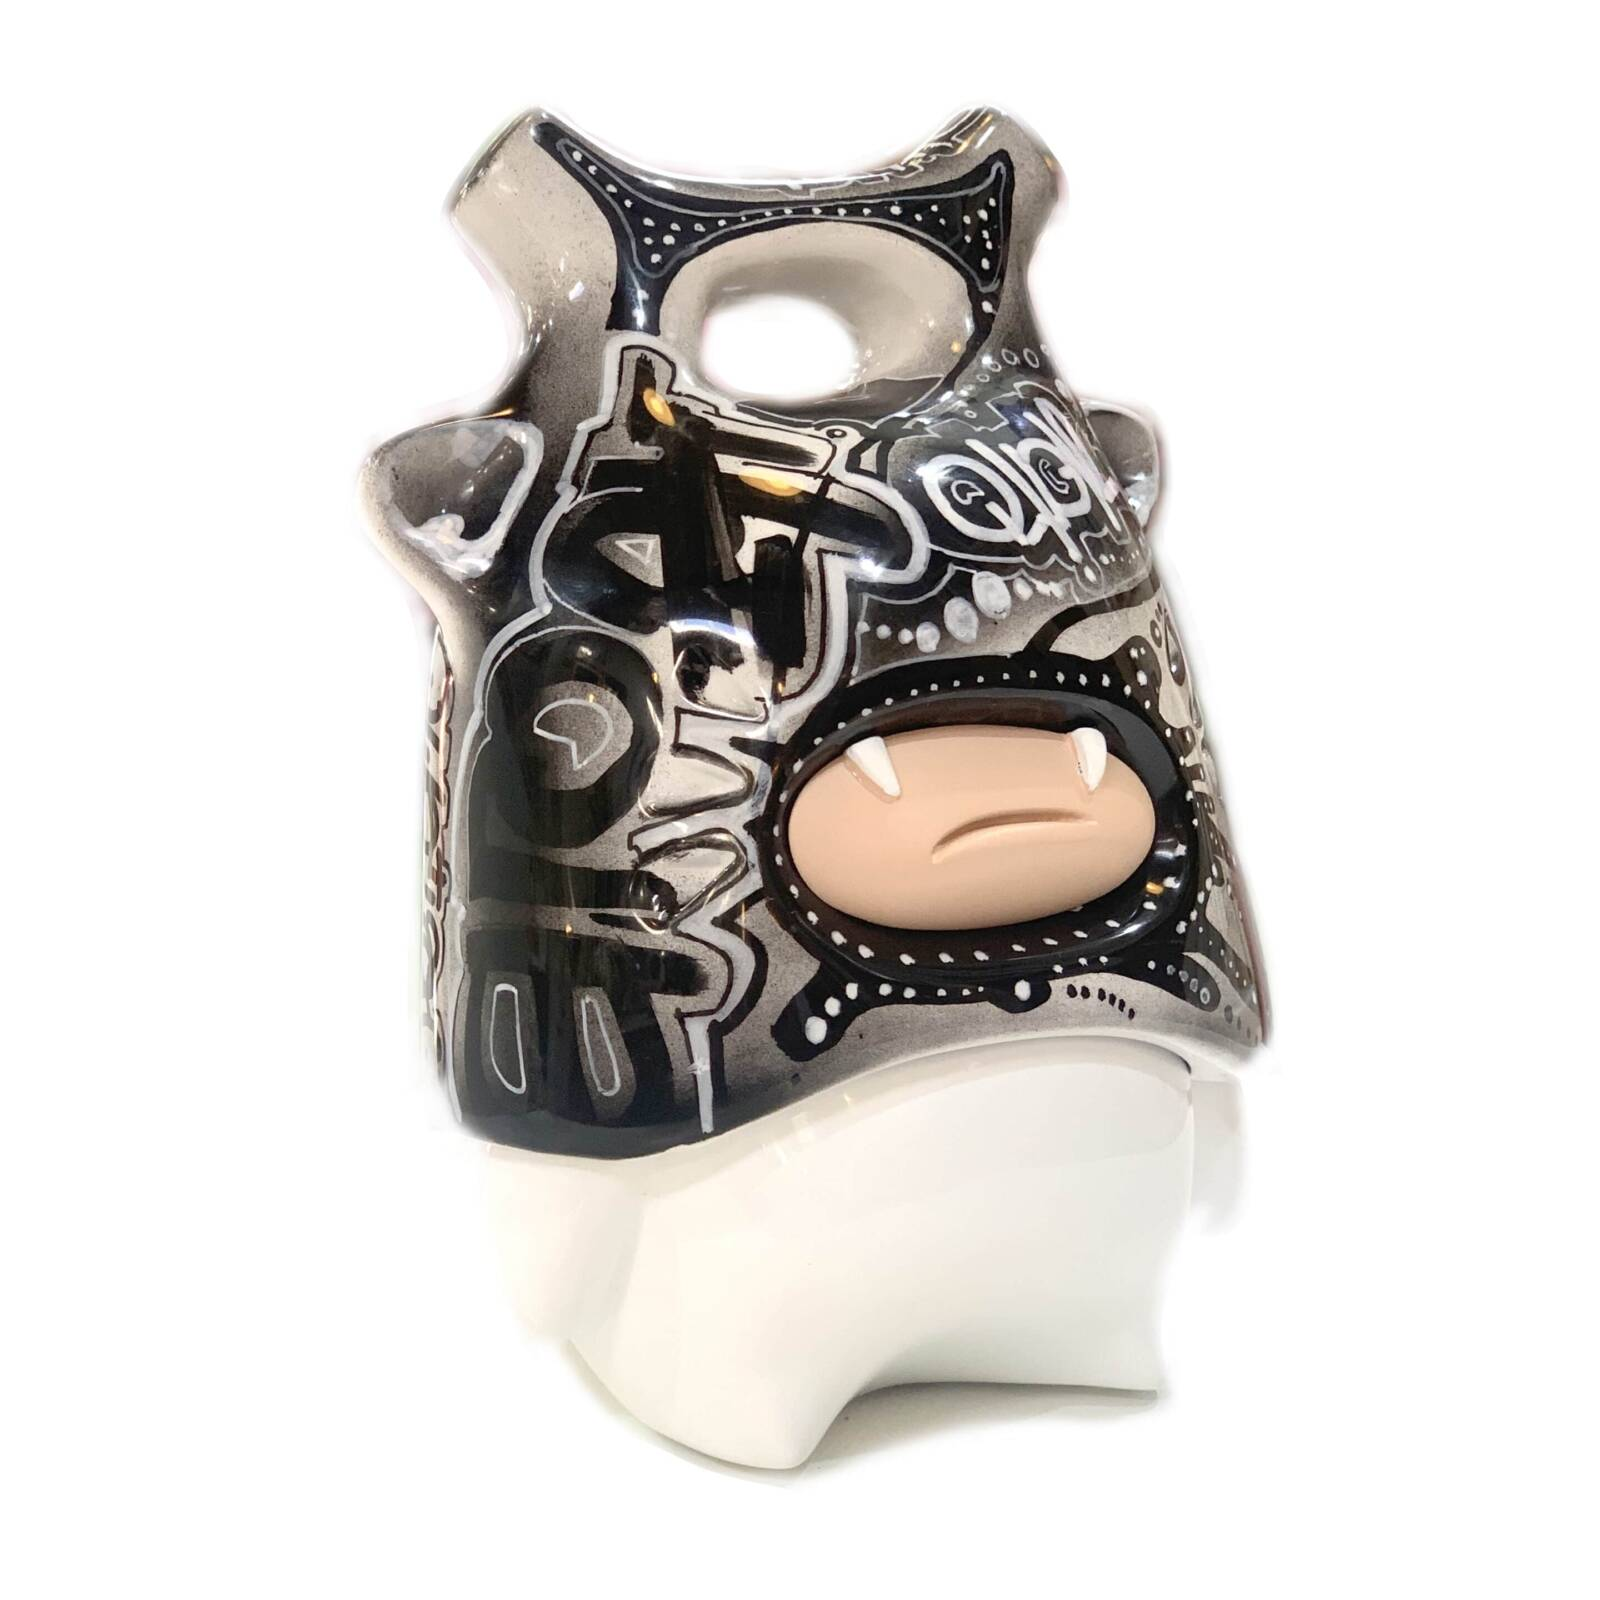 WAKO Felino Storyteller evo 3 art toy limited edition